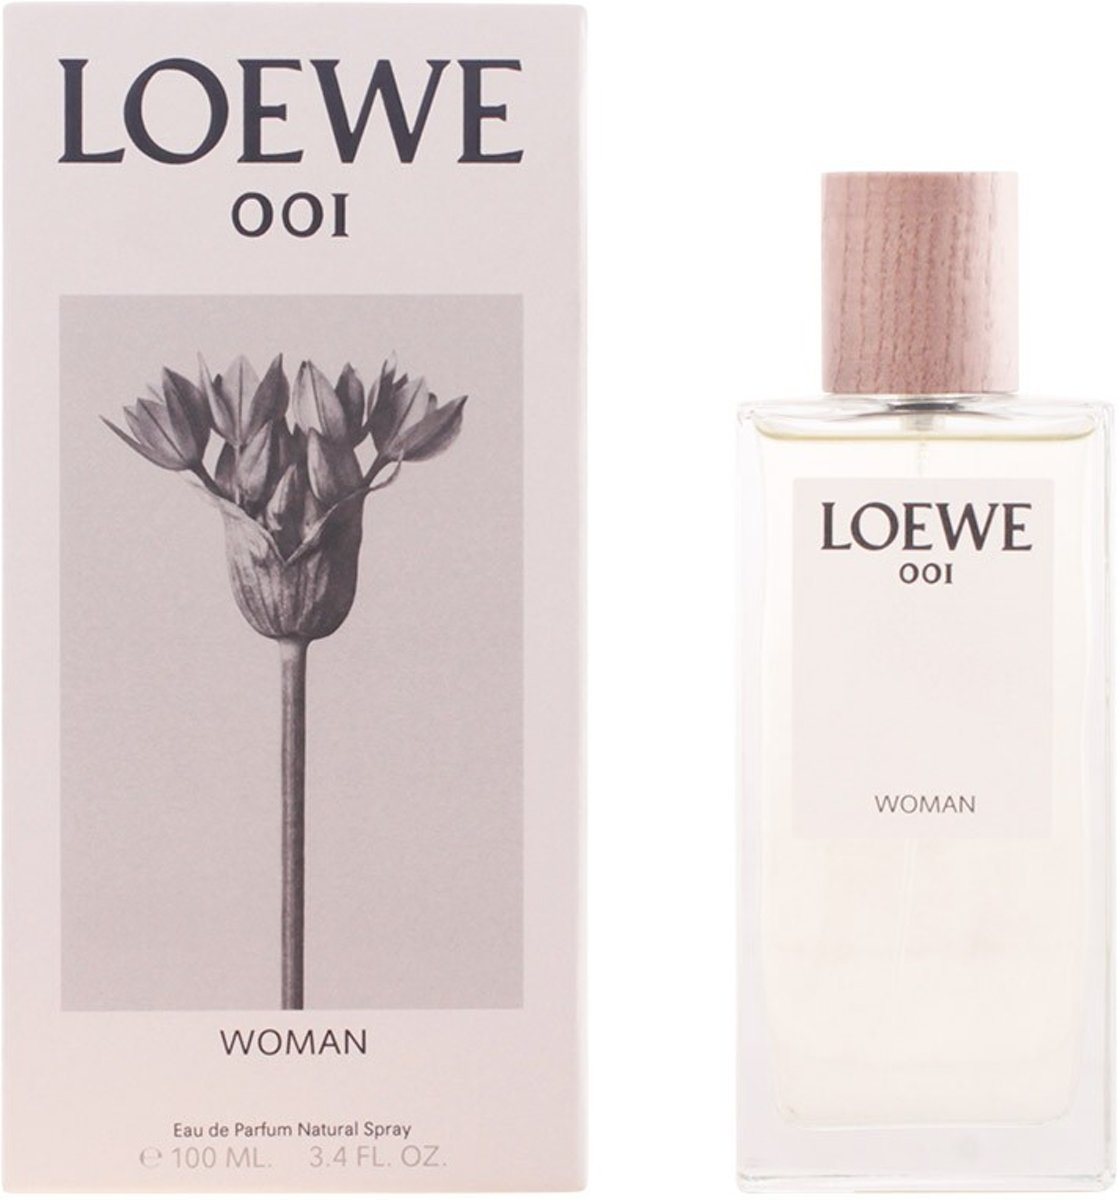 MULTI BUNDEL 2 stuks LOEWE 001 WOMAN Eau de Perfume Spray 100 ml